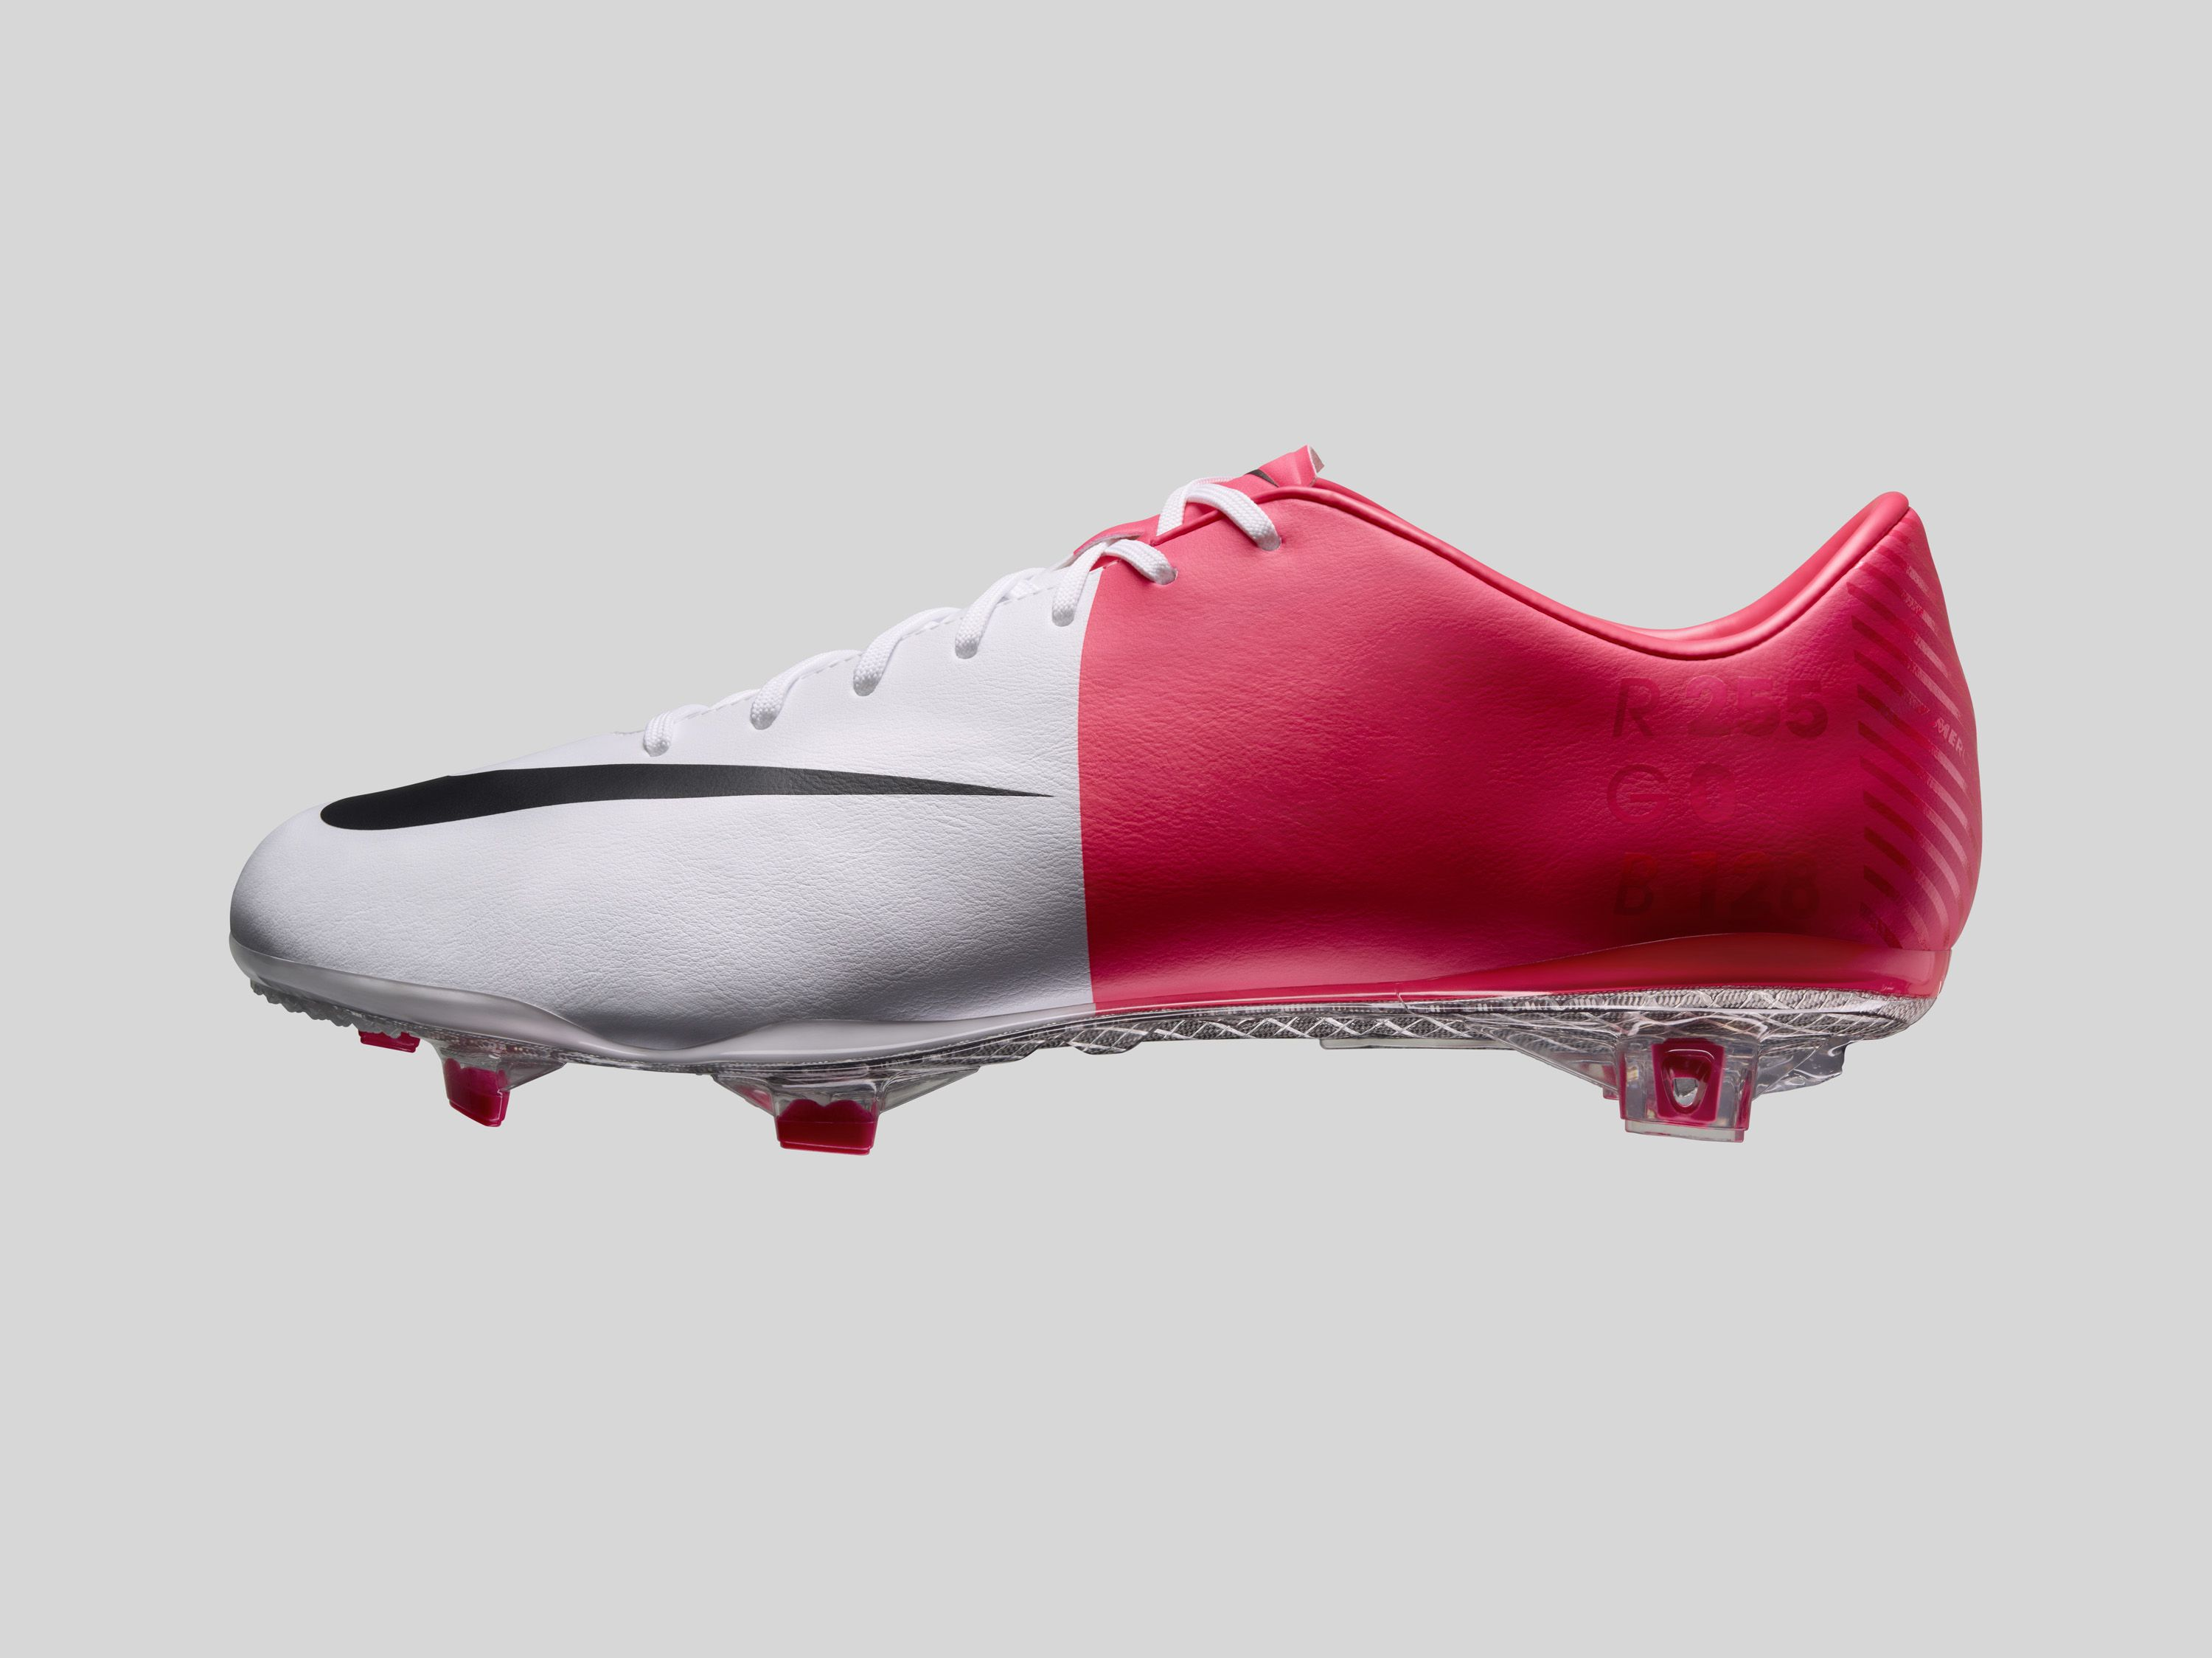 846d46d85 My next pair of boots – Nike Mercurial Vapour VIII: The Clash Collection.  Check out the RGB reference on the side. Brilliant!